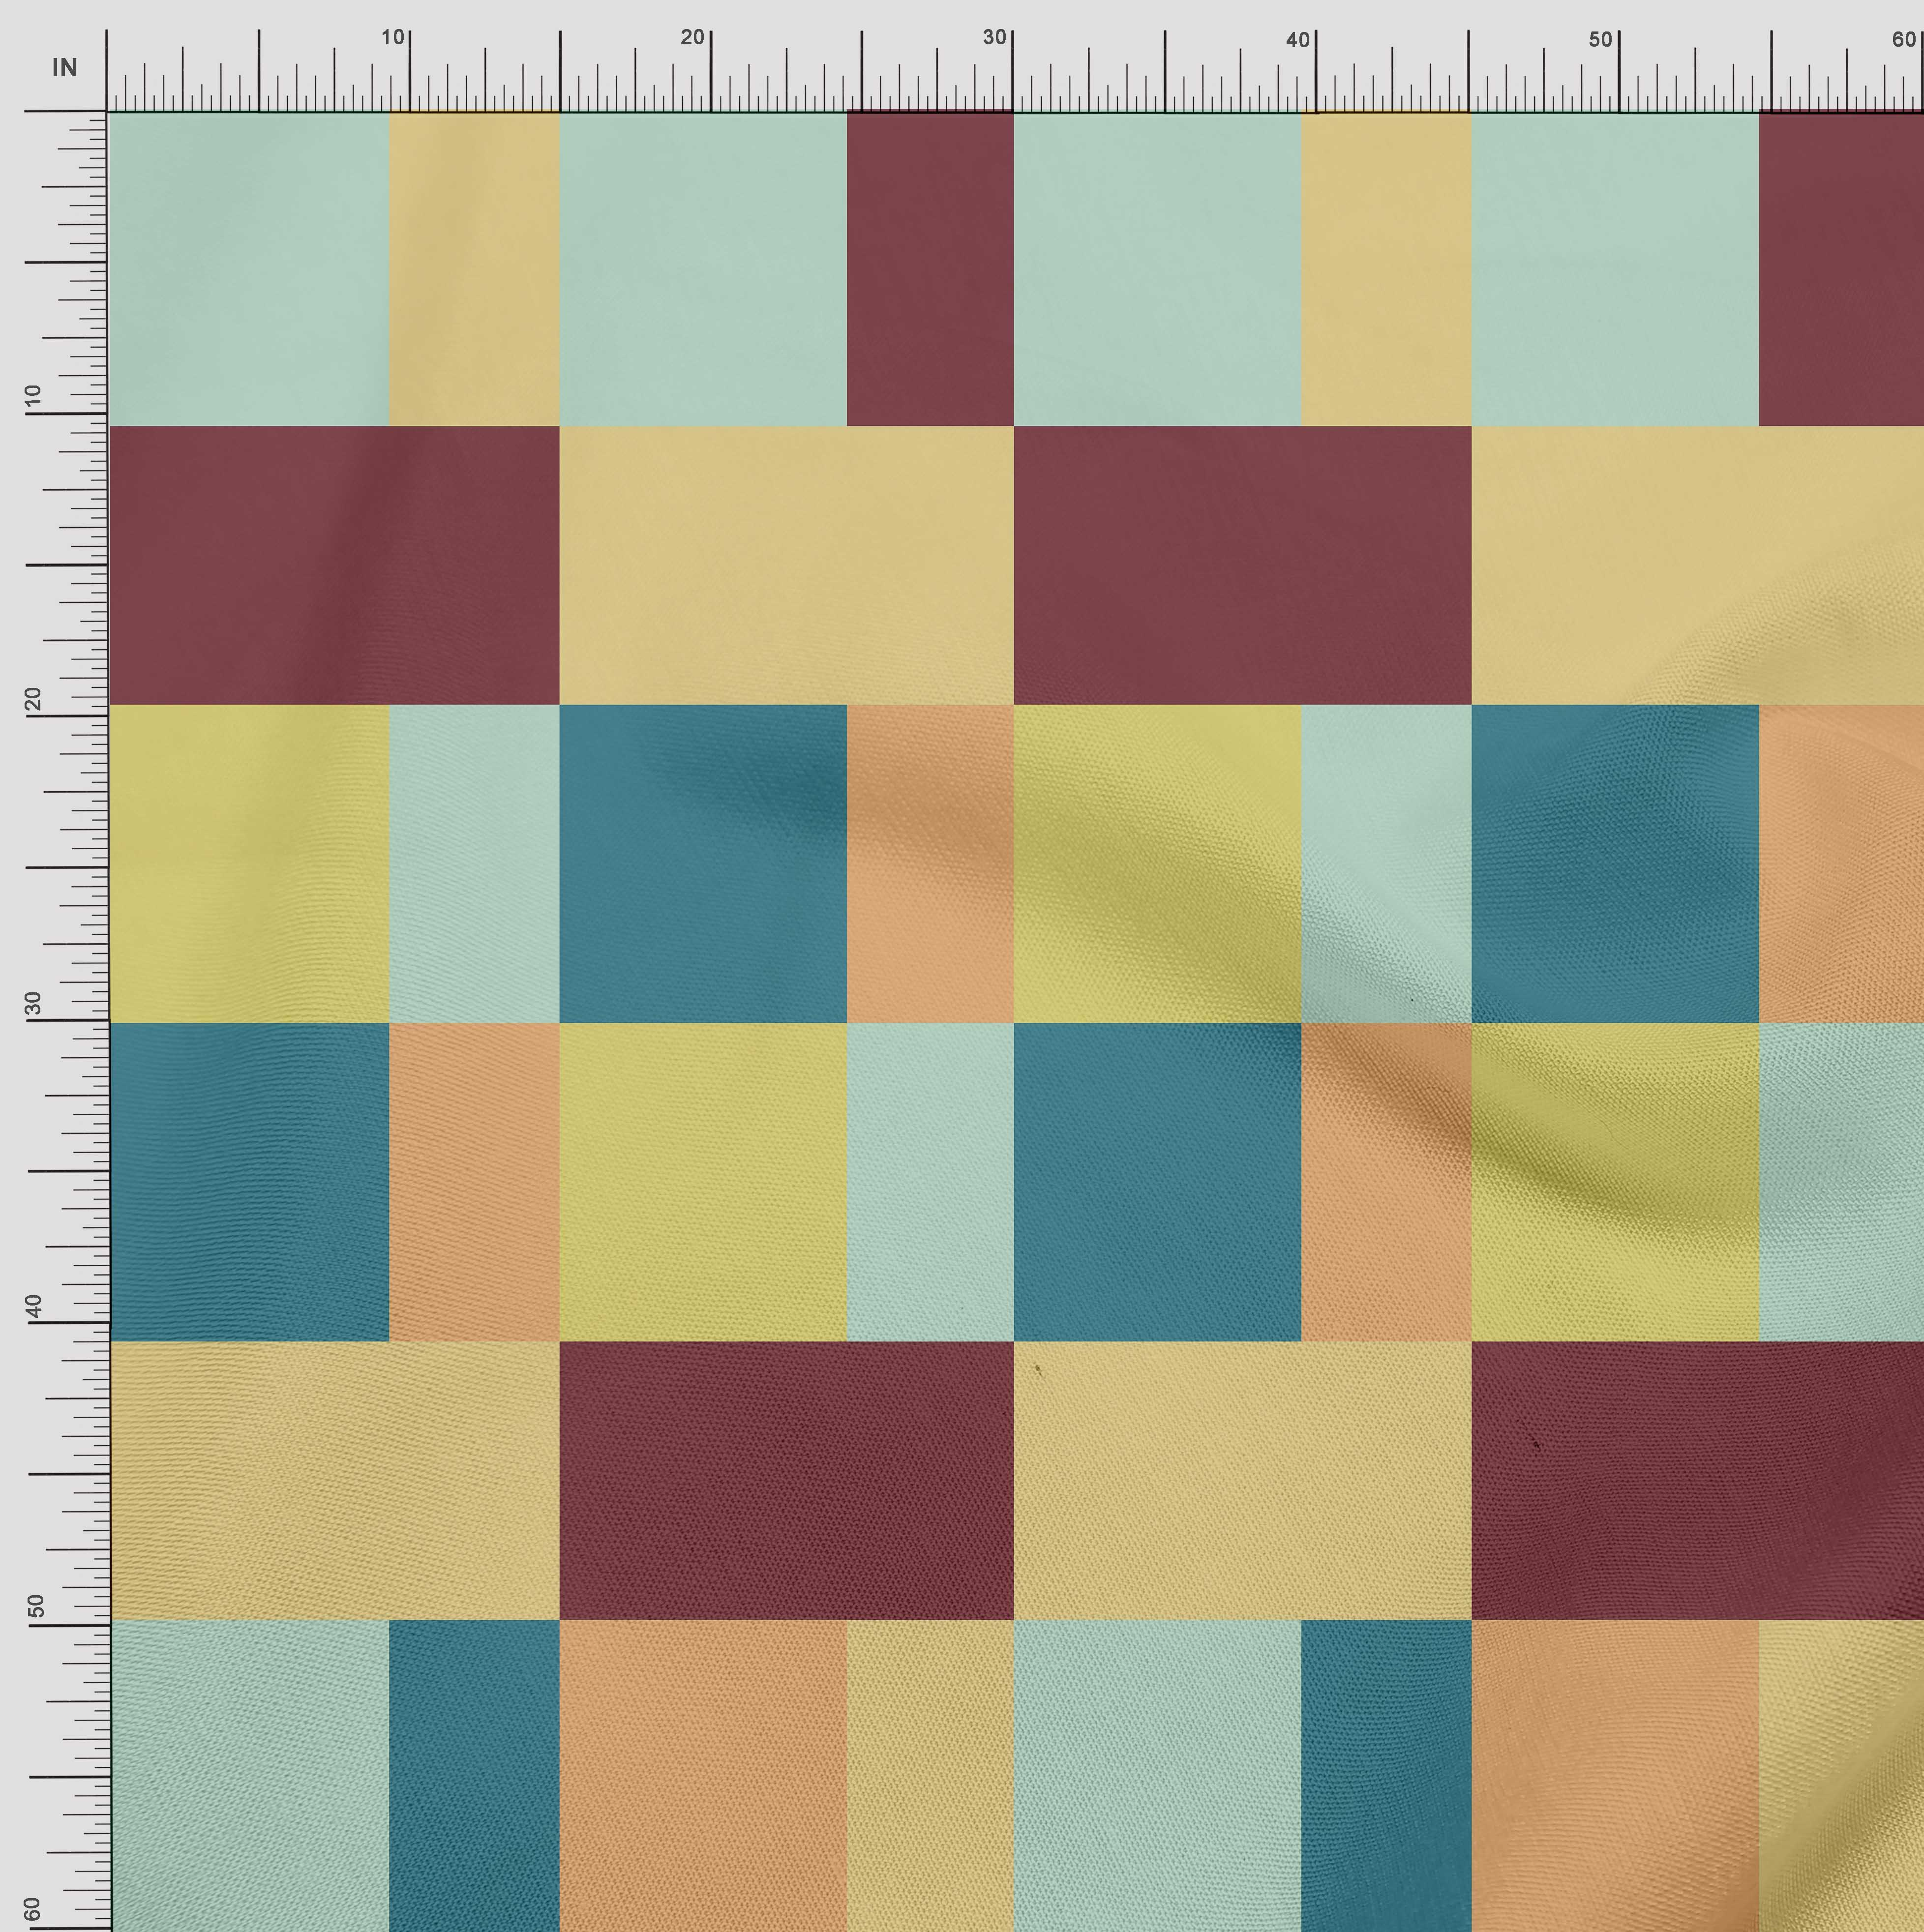 Soimoi-Cotton-Poplin-Fabric-Geometric-Panel-Print-Fabric-by-metre-uzp thumbnail 4